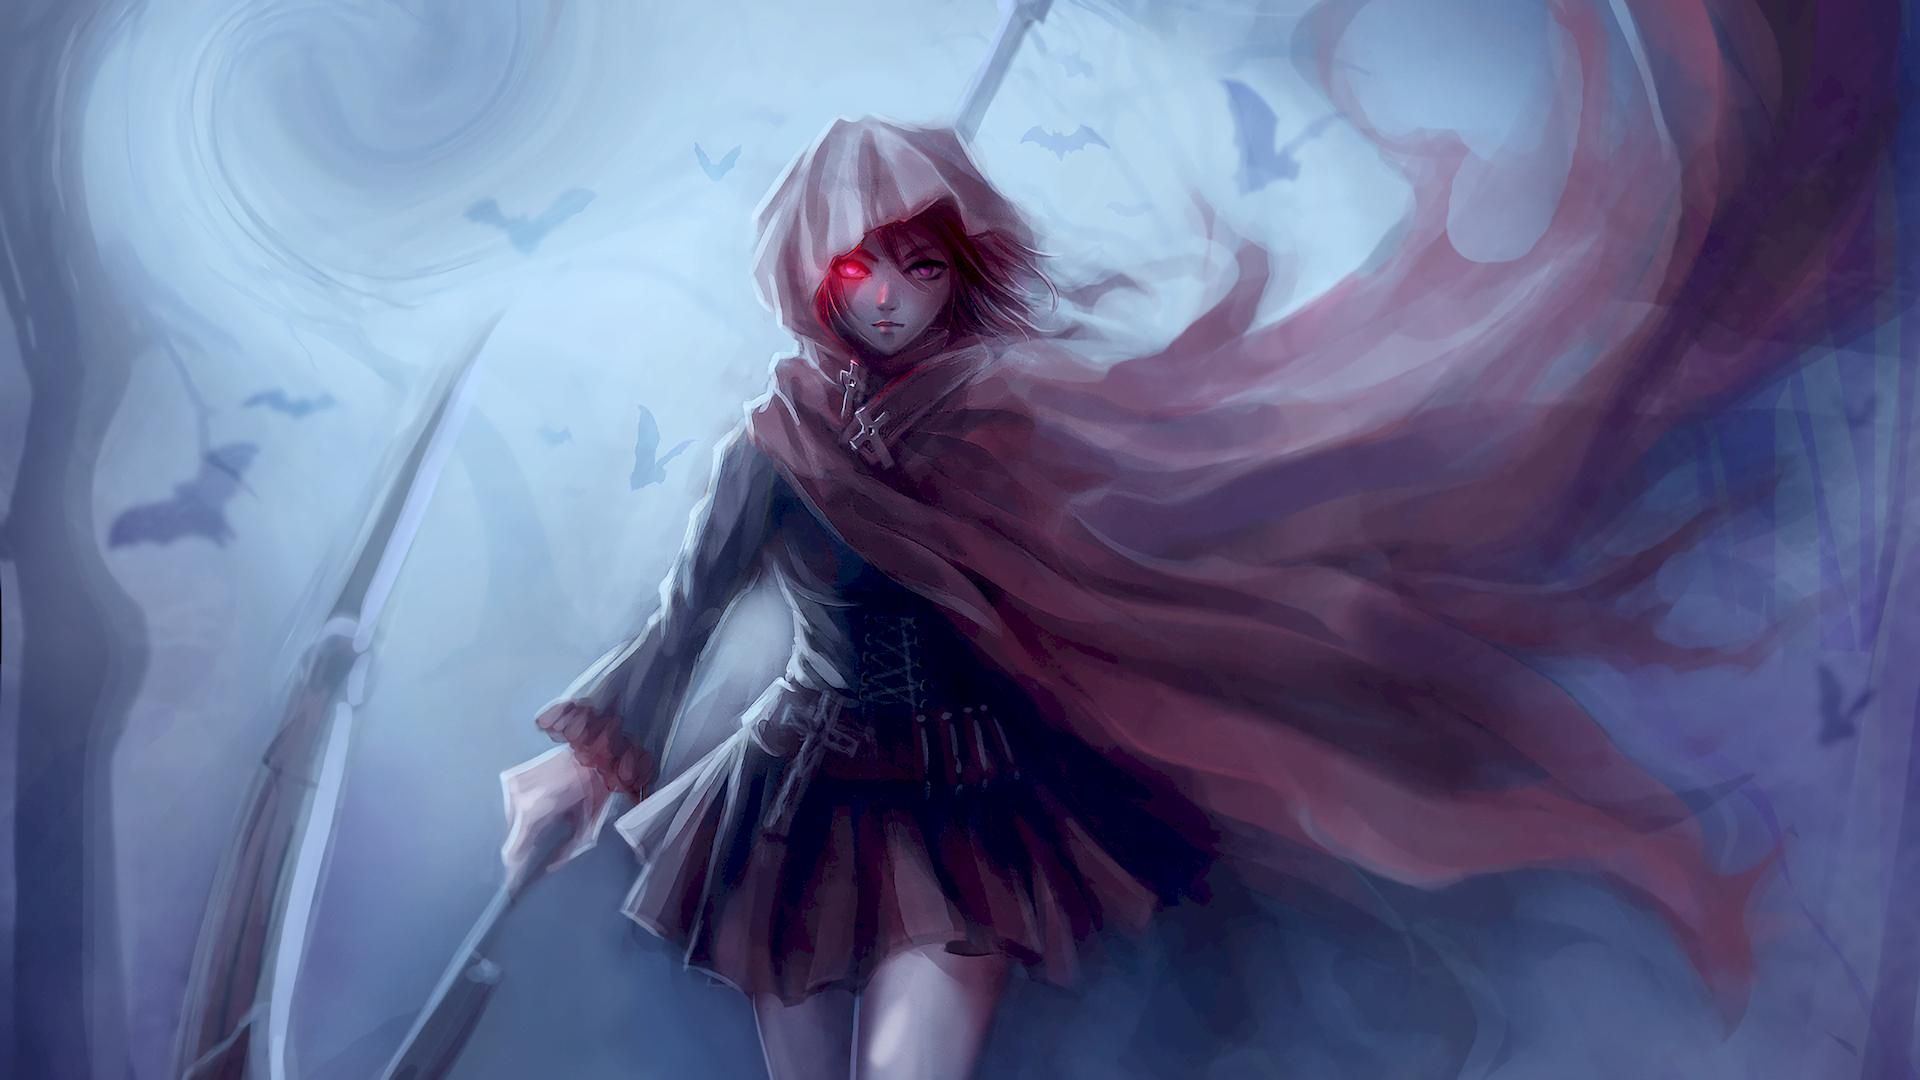 Imgur The most awesome images on the Rwby